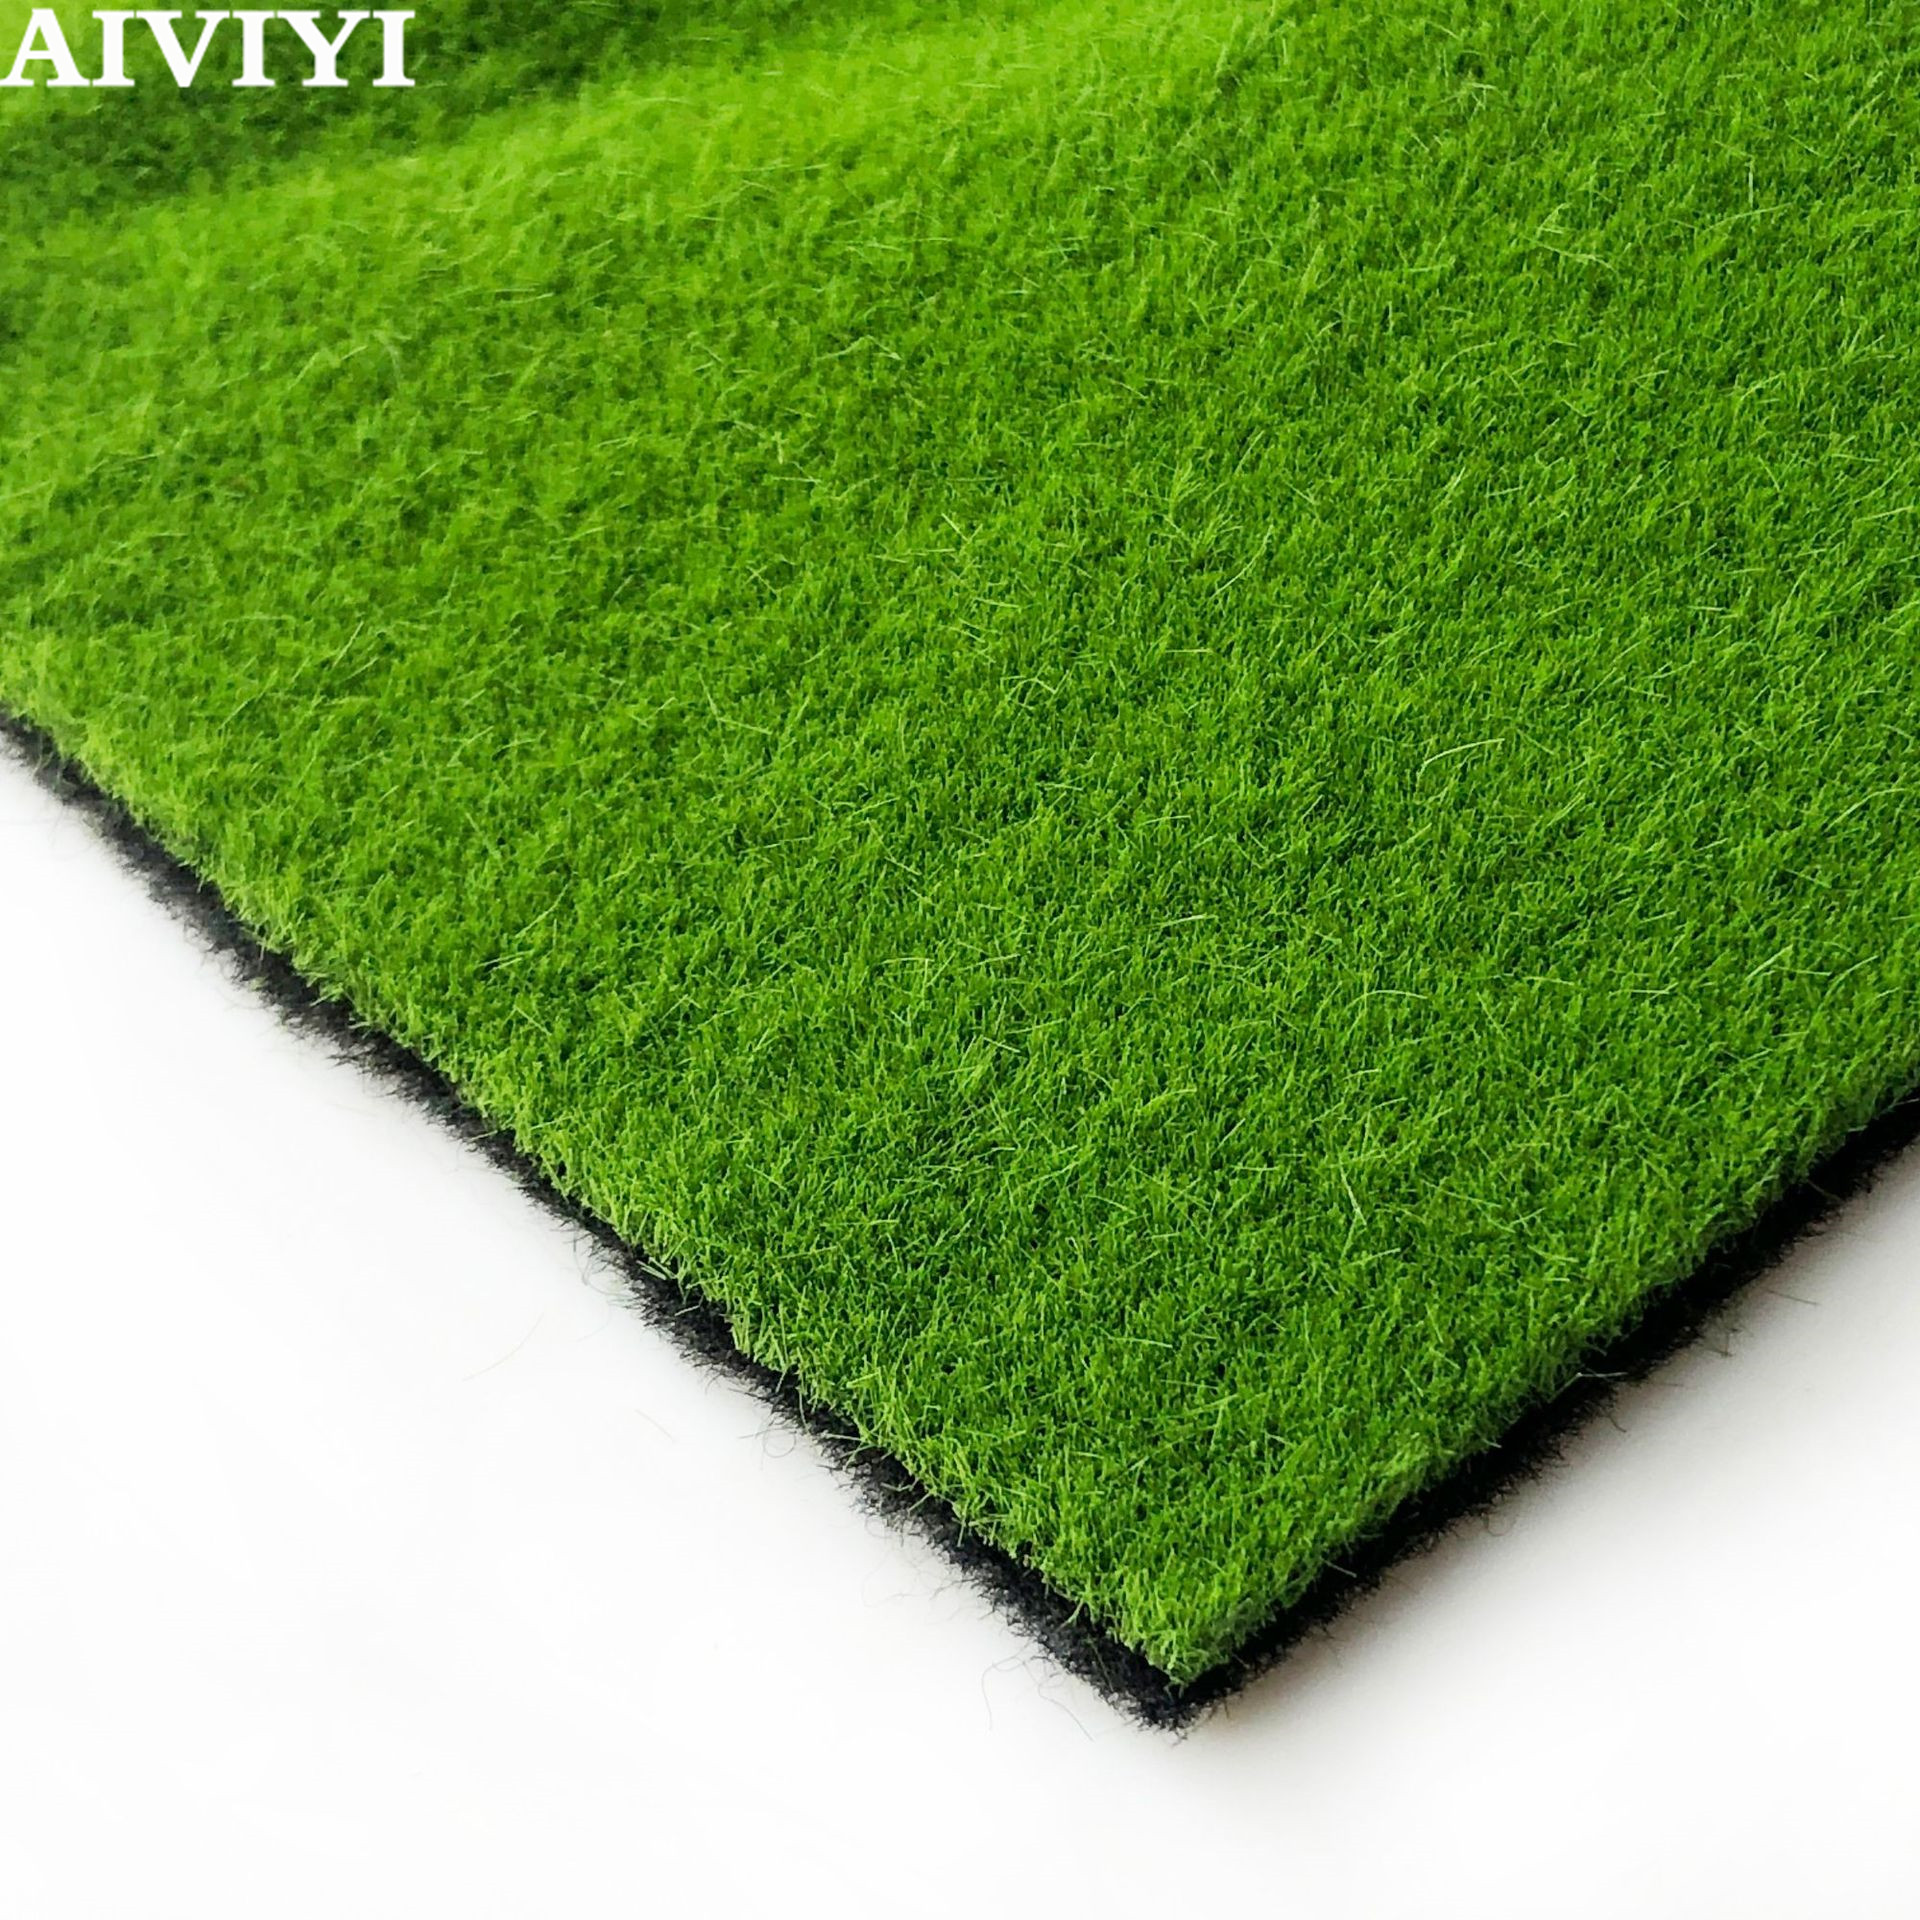 Lawn And Garden Near Me >> Best Top 10 Garden Grass Decor Near Me And Get Free Shipping